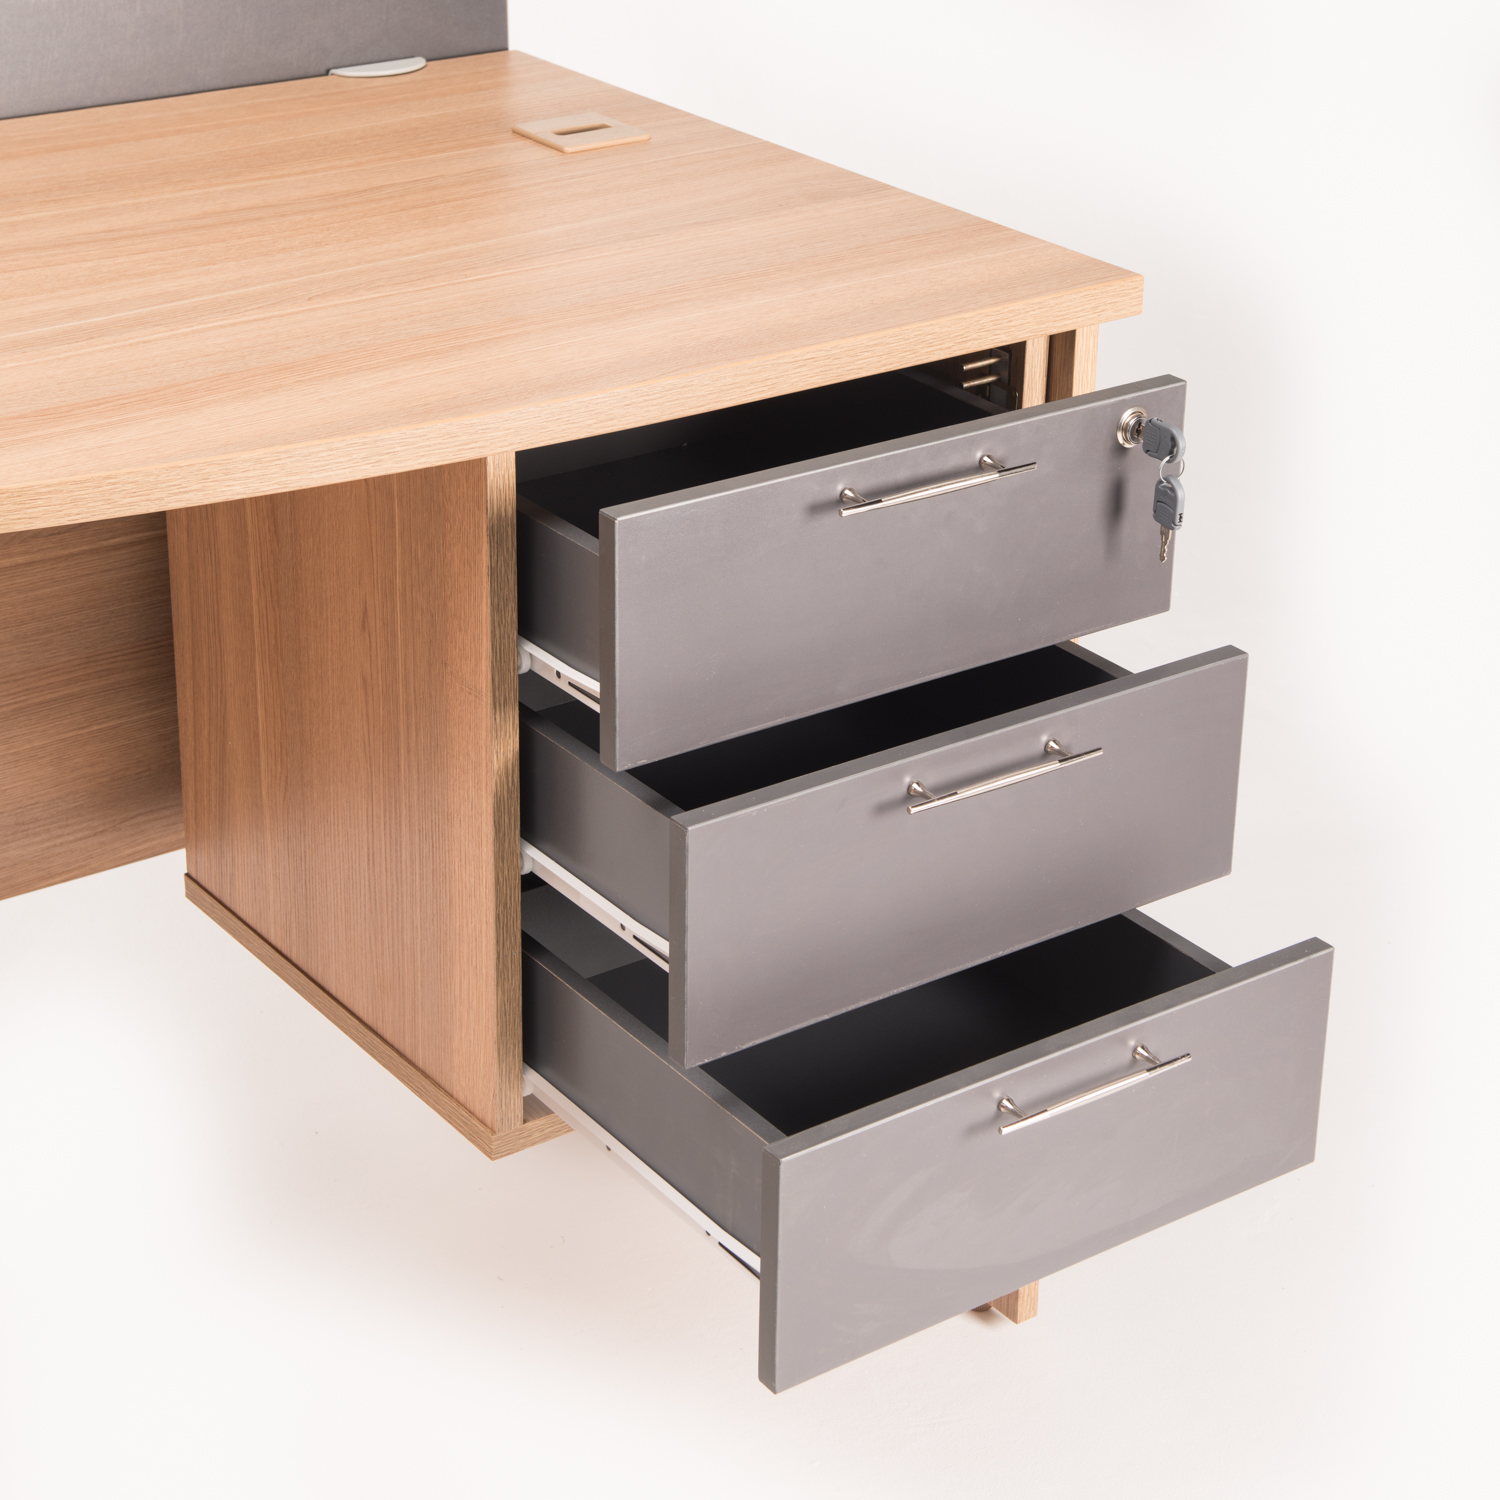 LEGO 3 DRAWER UNIT FOR DESKS